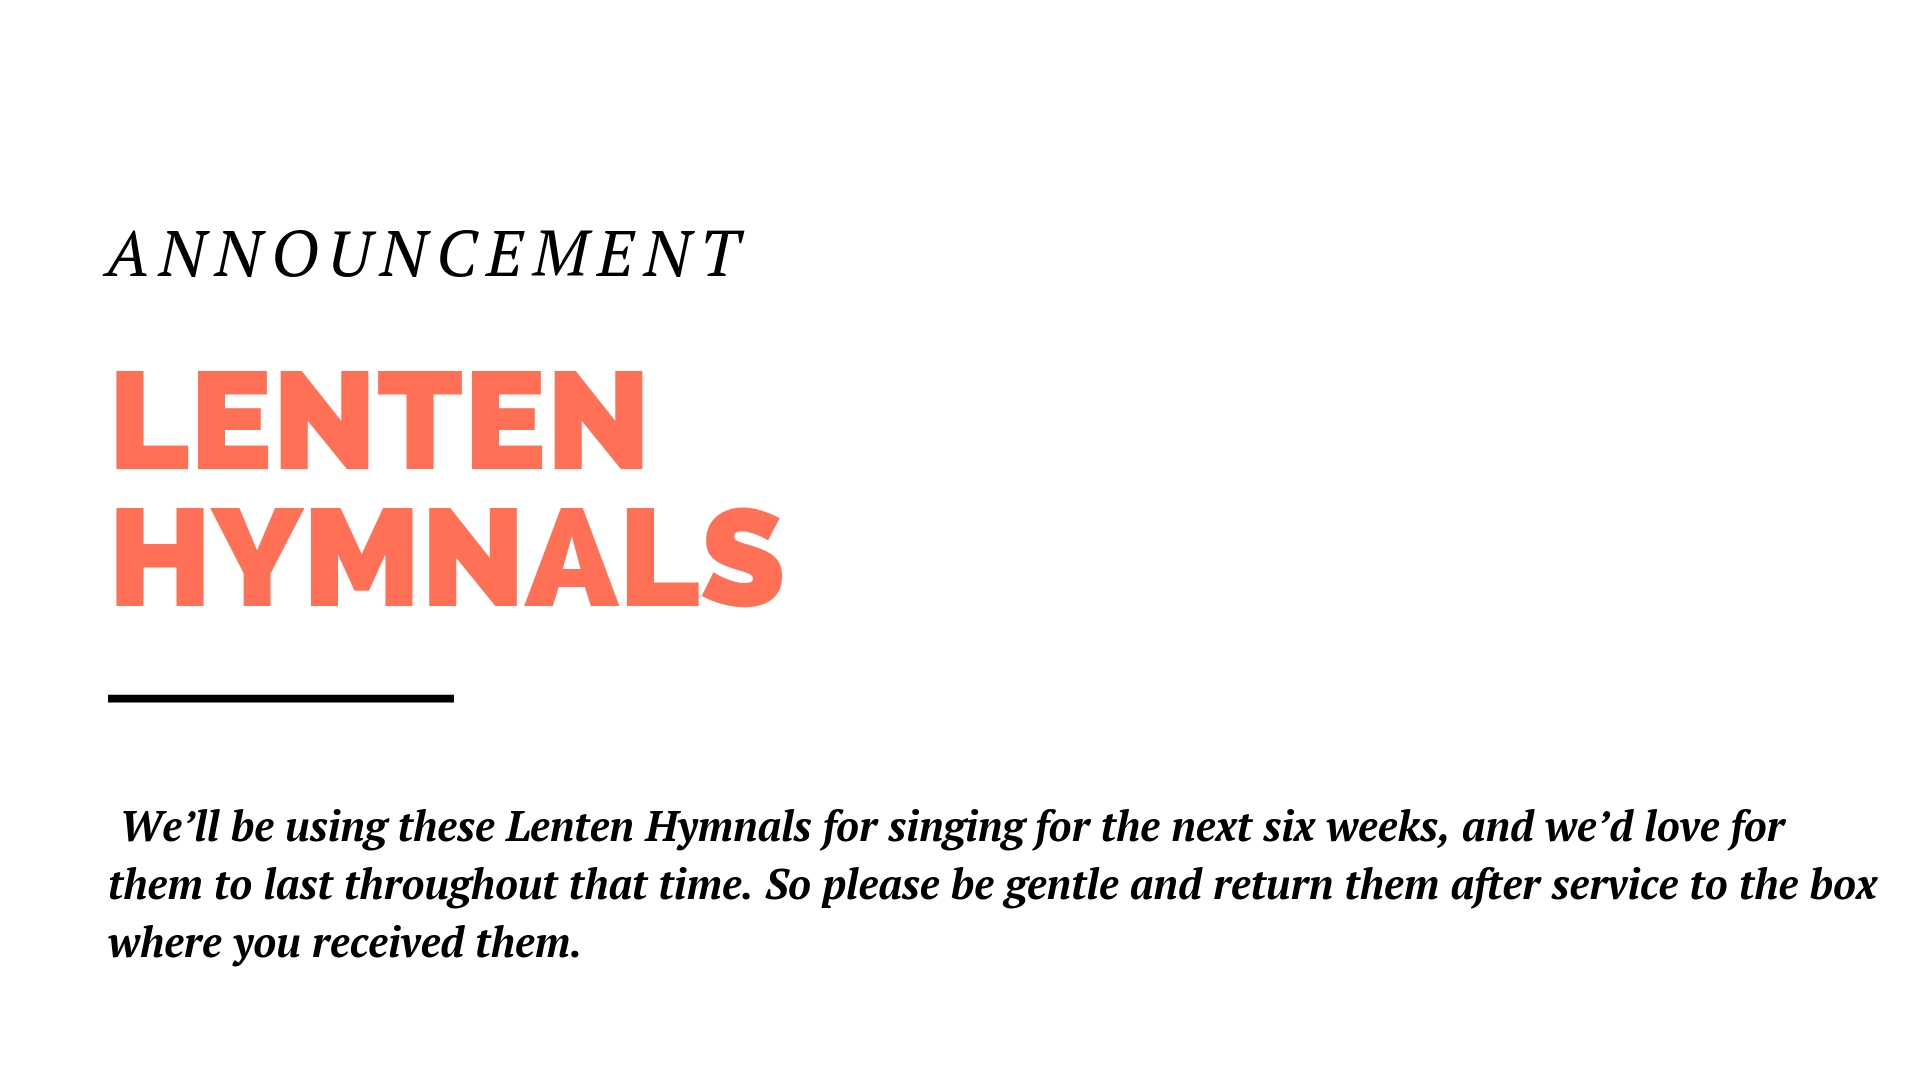 We'll be using our Lenten Hymnals for singing for the next six weeks, and we'd love for them to last throughout that time. So please be gentle and return them after service on Sunday to the box where you received them.